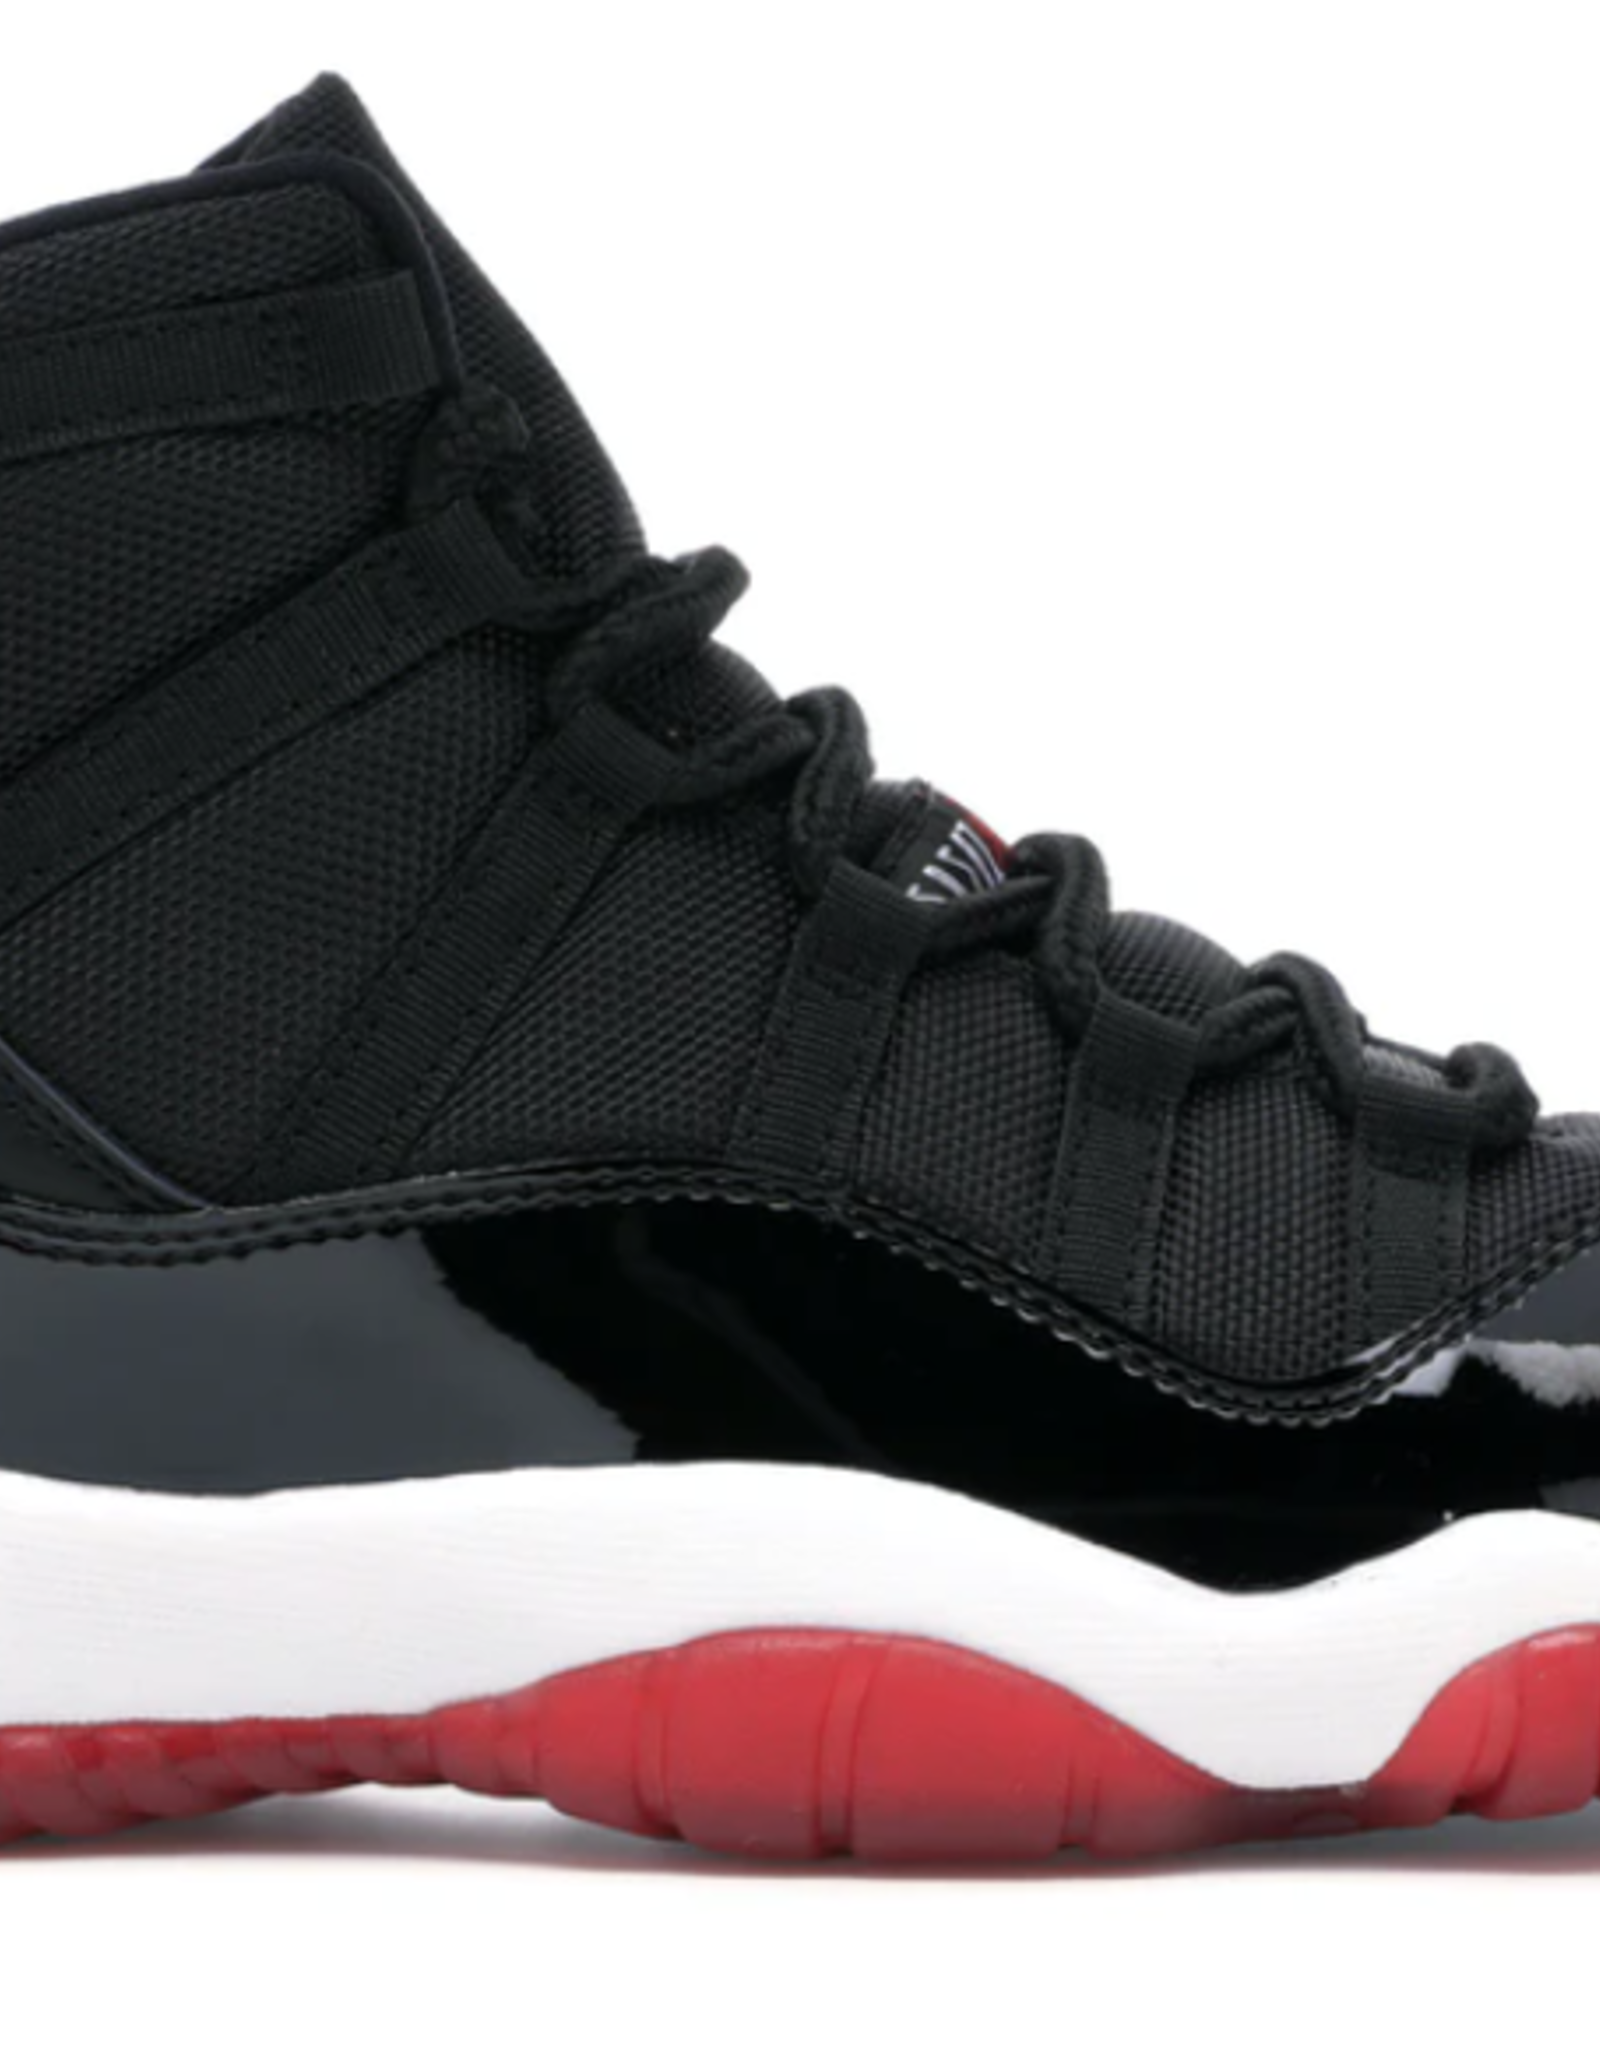 JORDAN 11 Retro Playoffs Bred 2019 (GS)